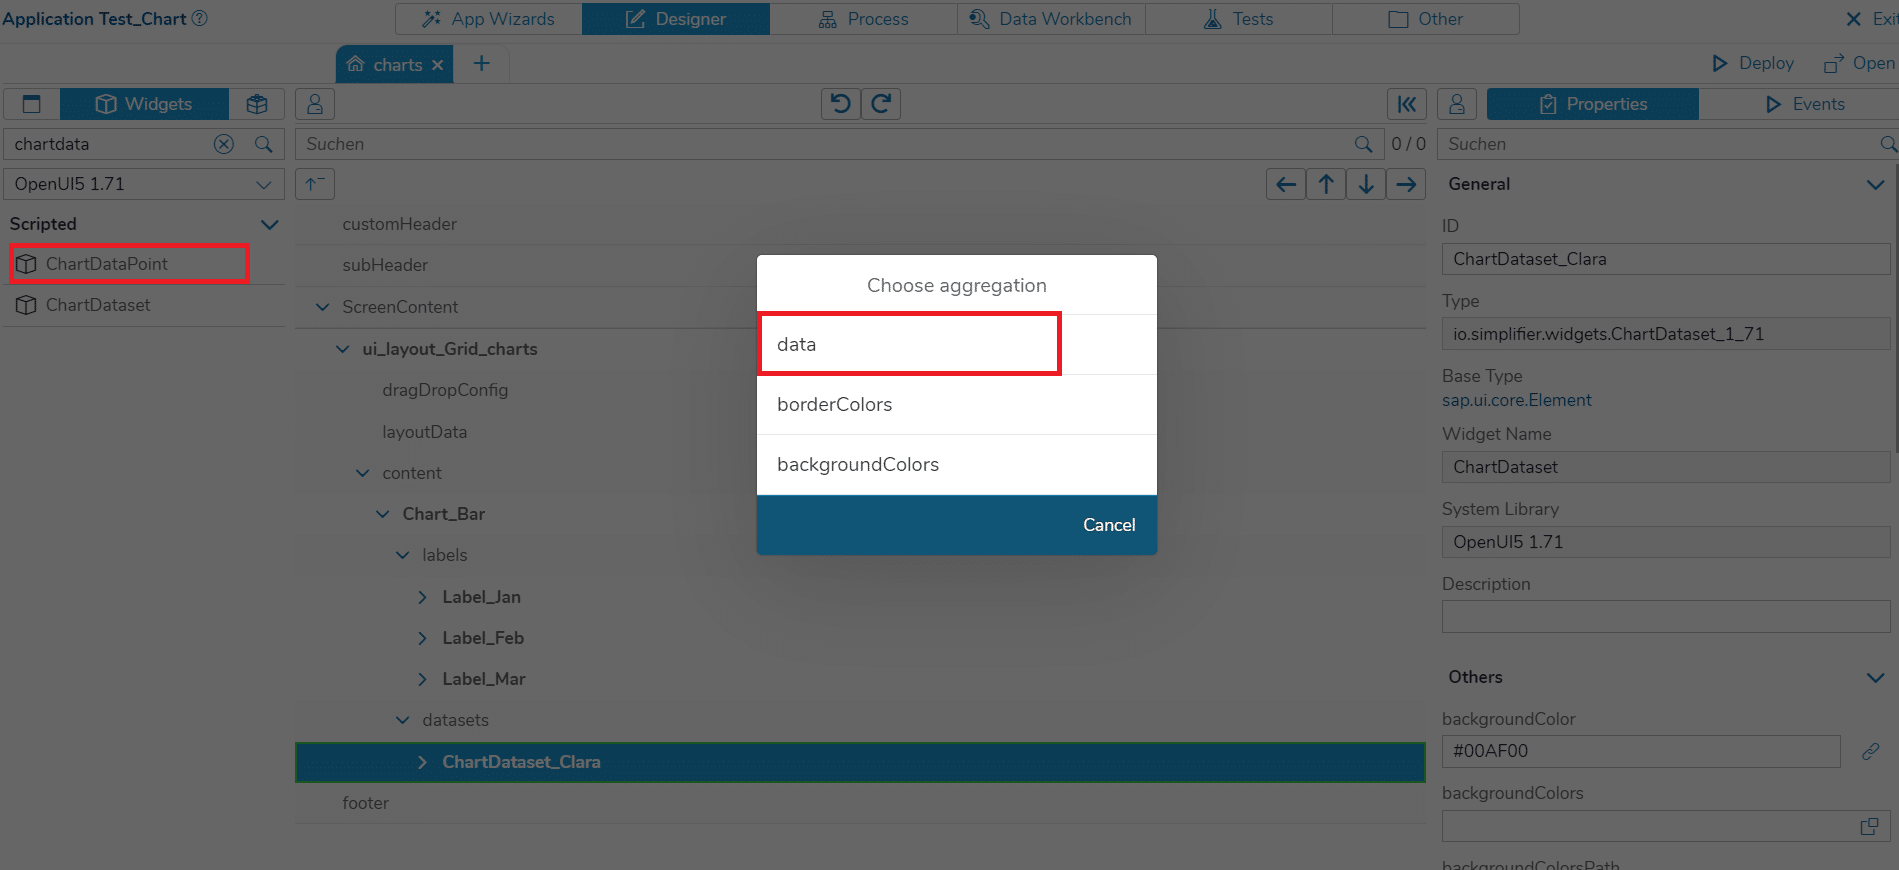 Choose 'data' as an aggregation in the dialog